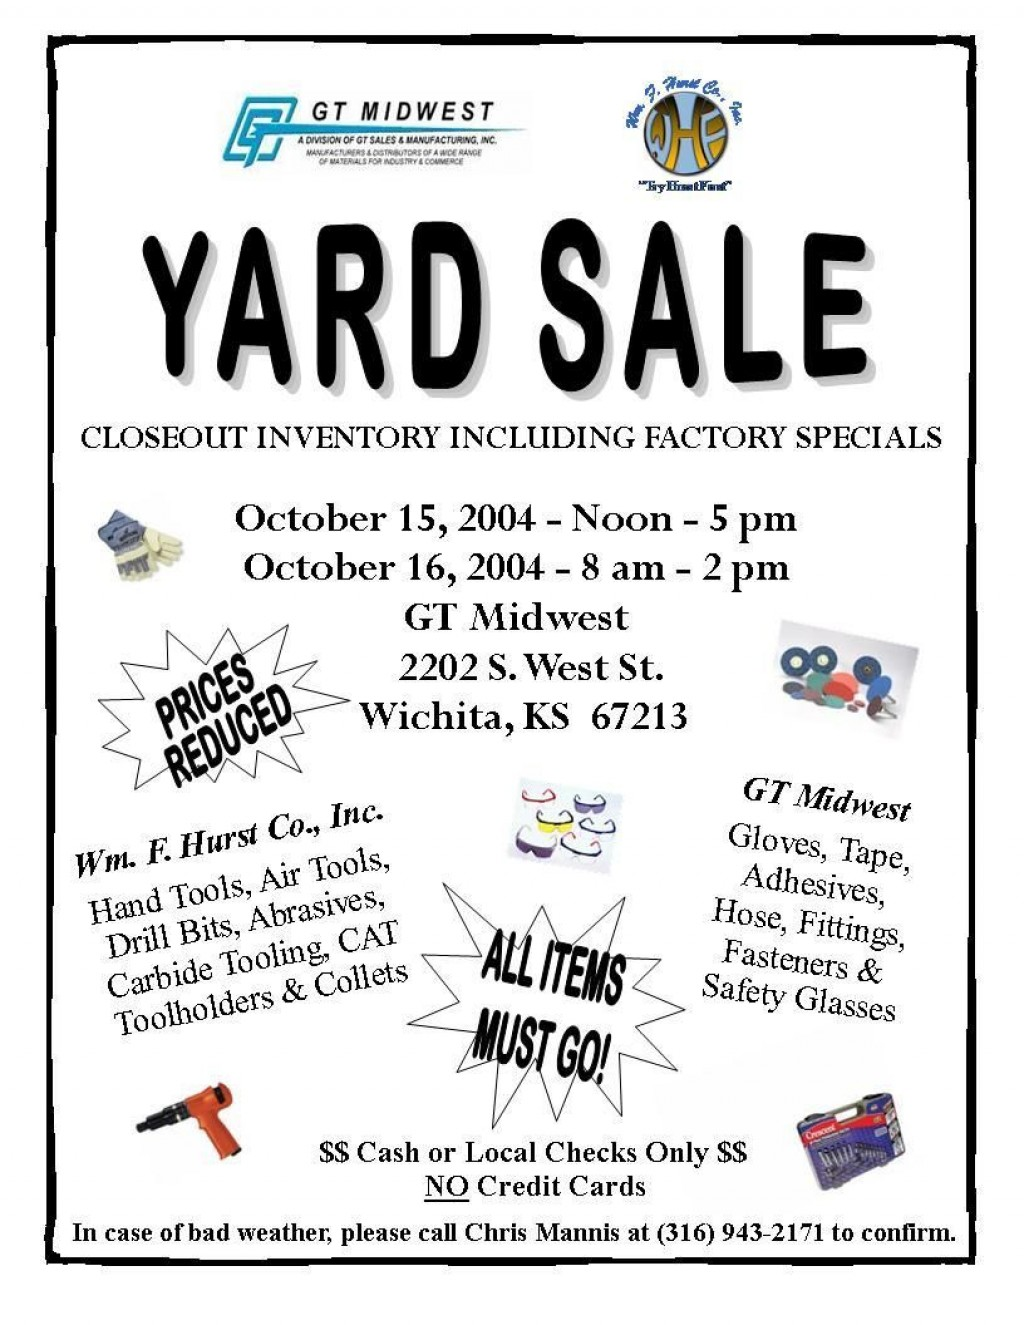 002 Top Yard Sale Flyer Template Sample  Ad Microsoft Word Garage FreeLarge